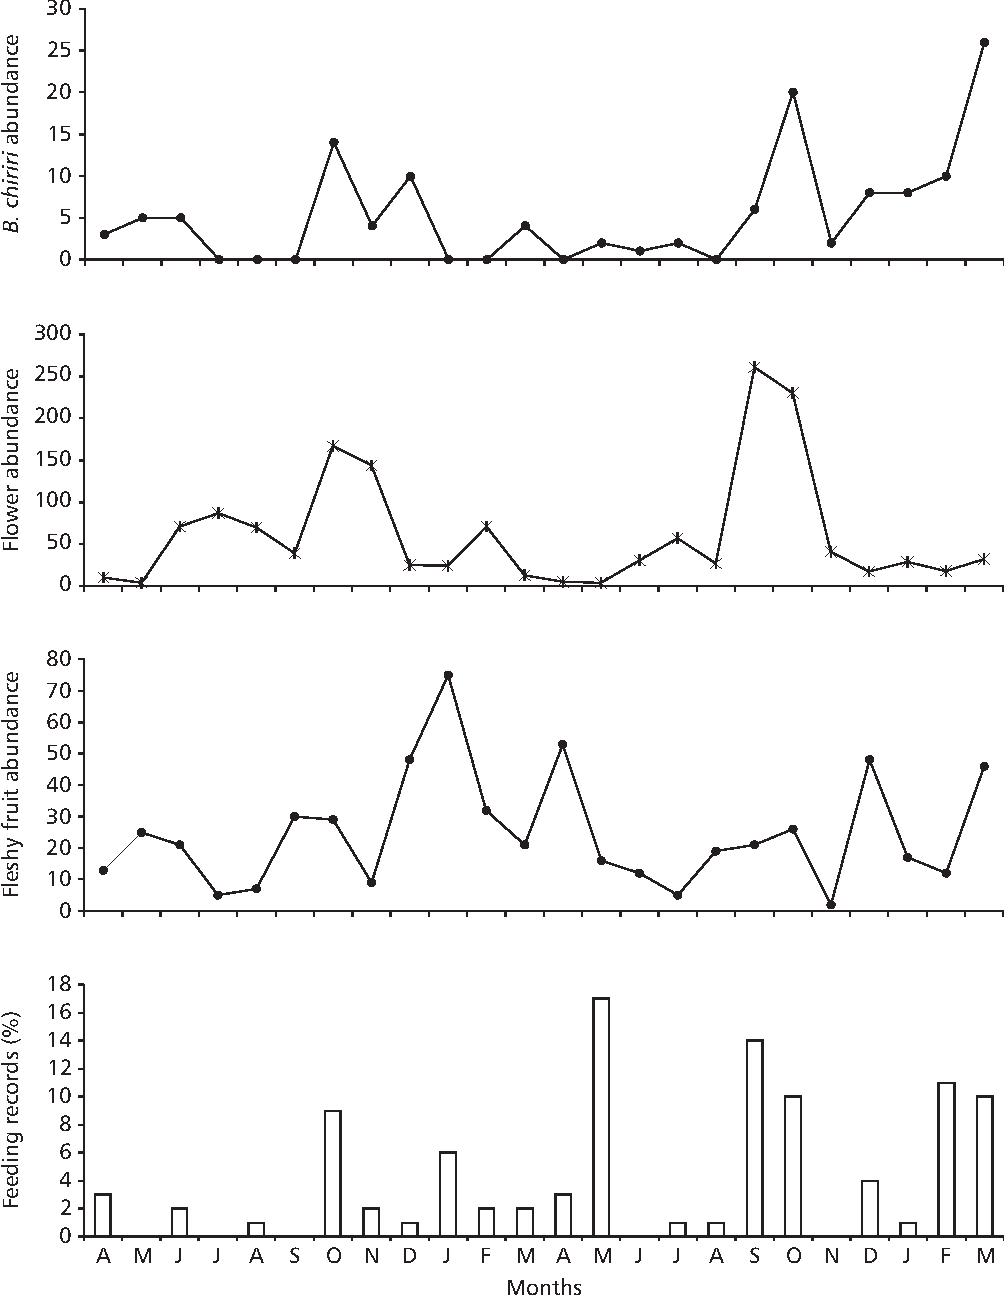 Fig. 3 — From top to bottom: monthly Brotogeris chiriri abundance, flower and fleshy fruit abundance, and percentage of feeding records (N = 131), at the Miranda river gallery forest, from April 2000 to March 2002.